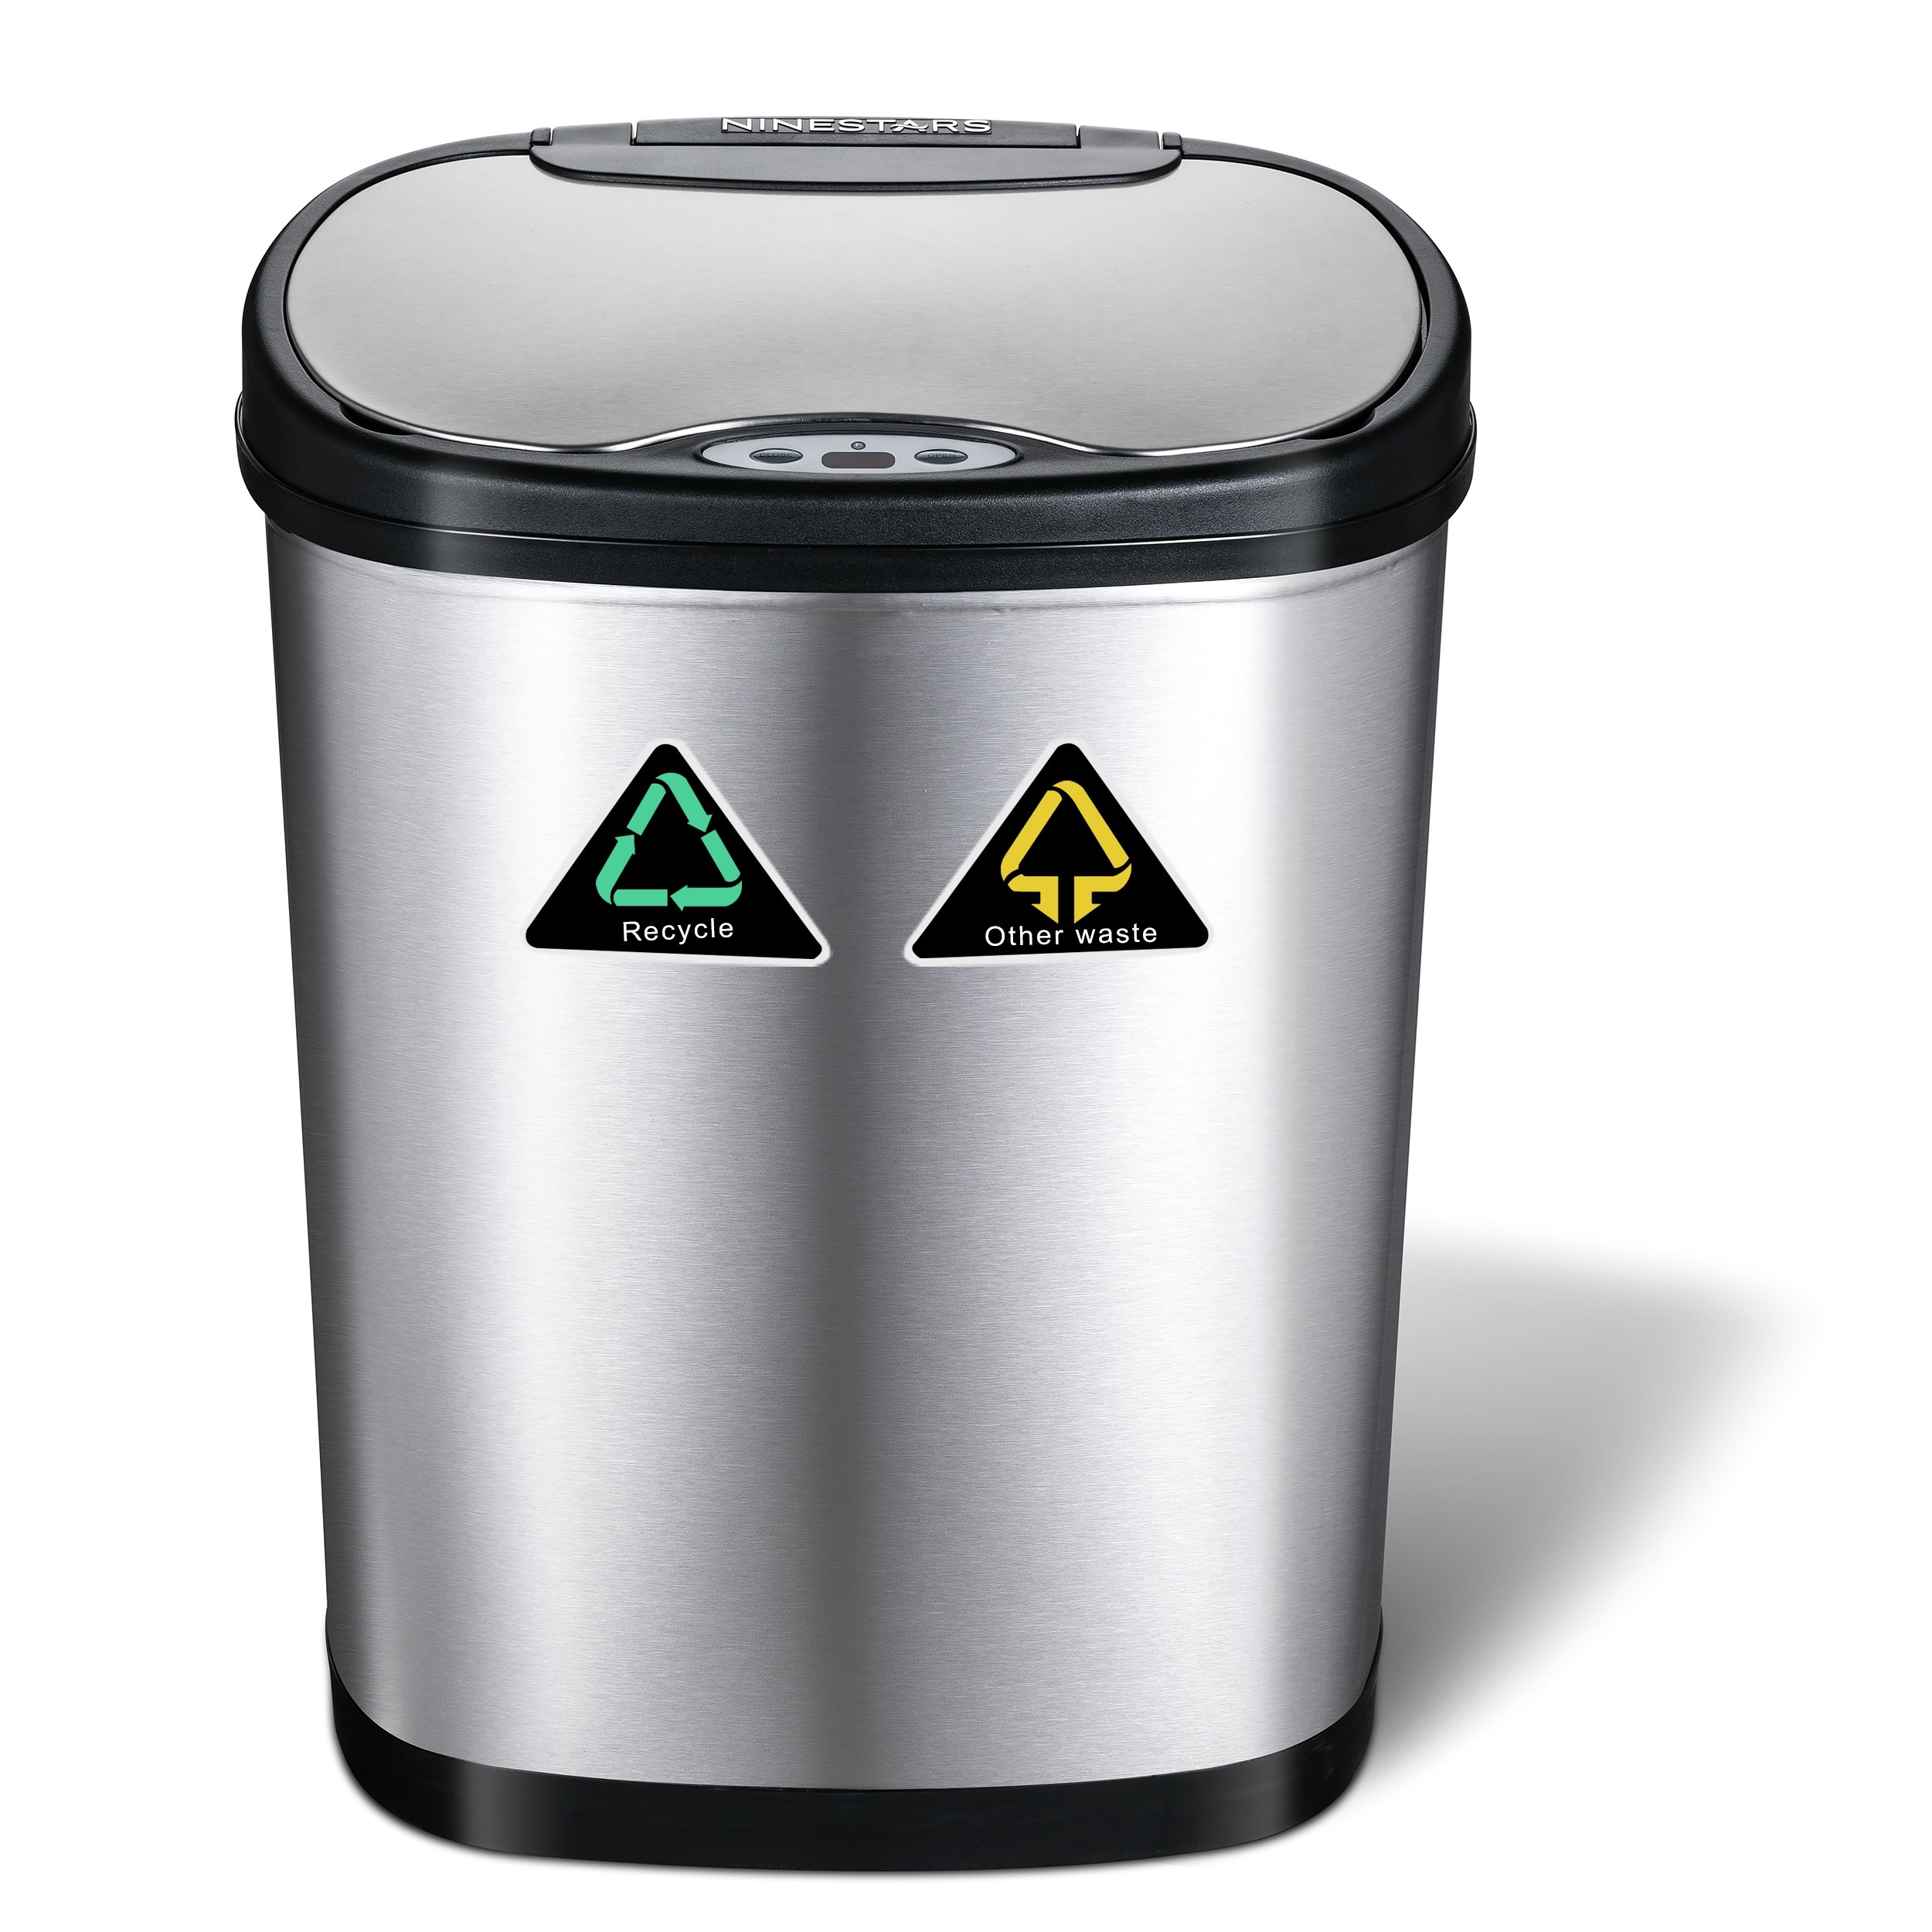 42 Litre (24 Litre + 18 Litre) Oval Plus Recycling Stainless Steel Autobin